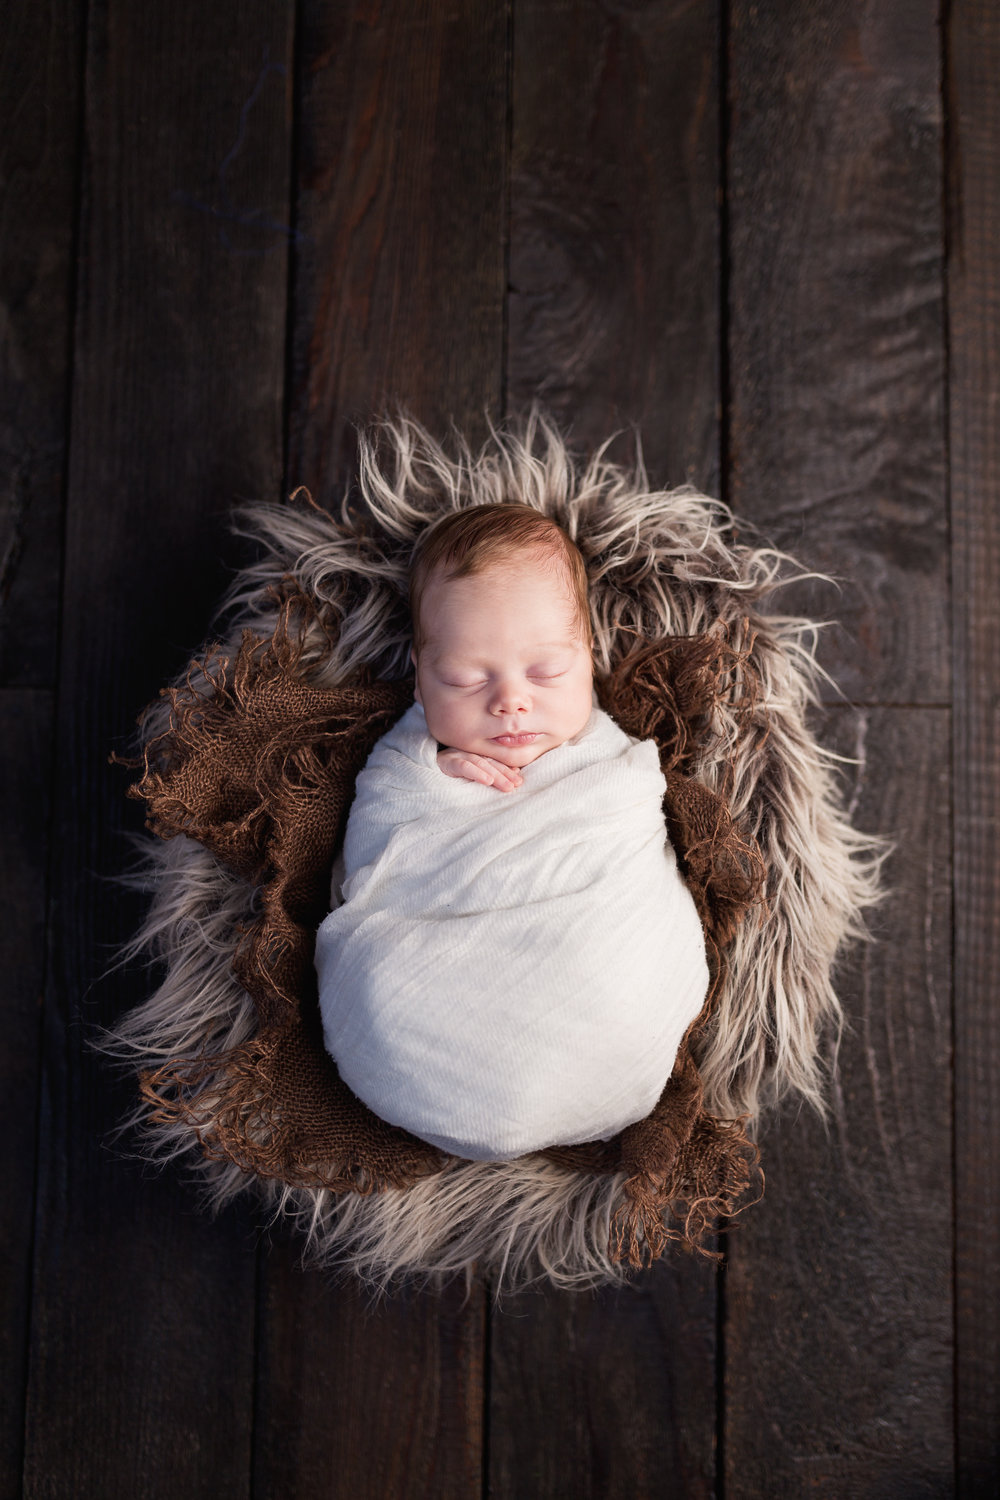 The portrait of a baby boy swaddled in white on a bed of furs and burlap in bowl on a wood floor by Southern California newborn and family photographer Nature's Reward Photography